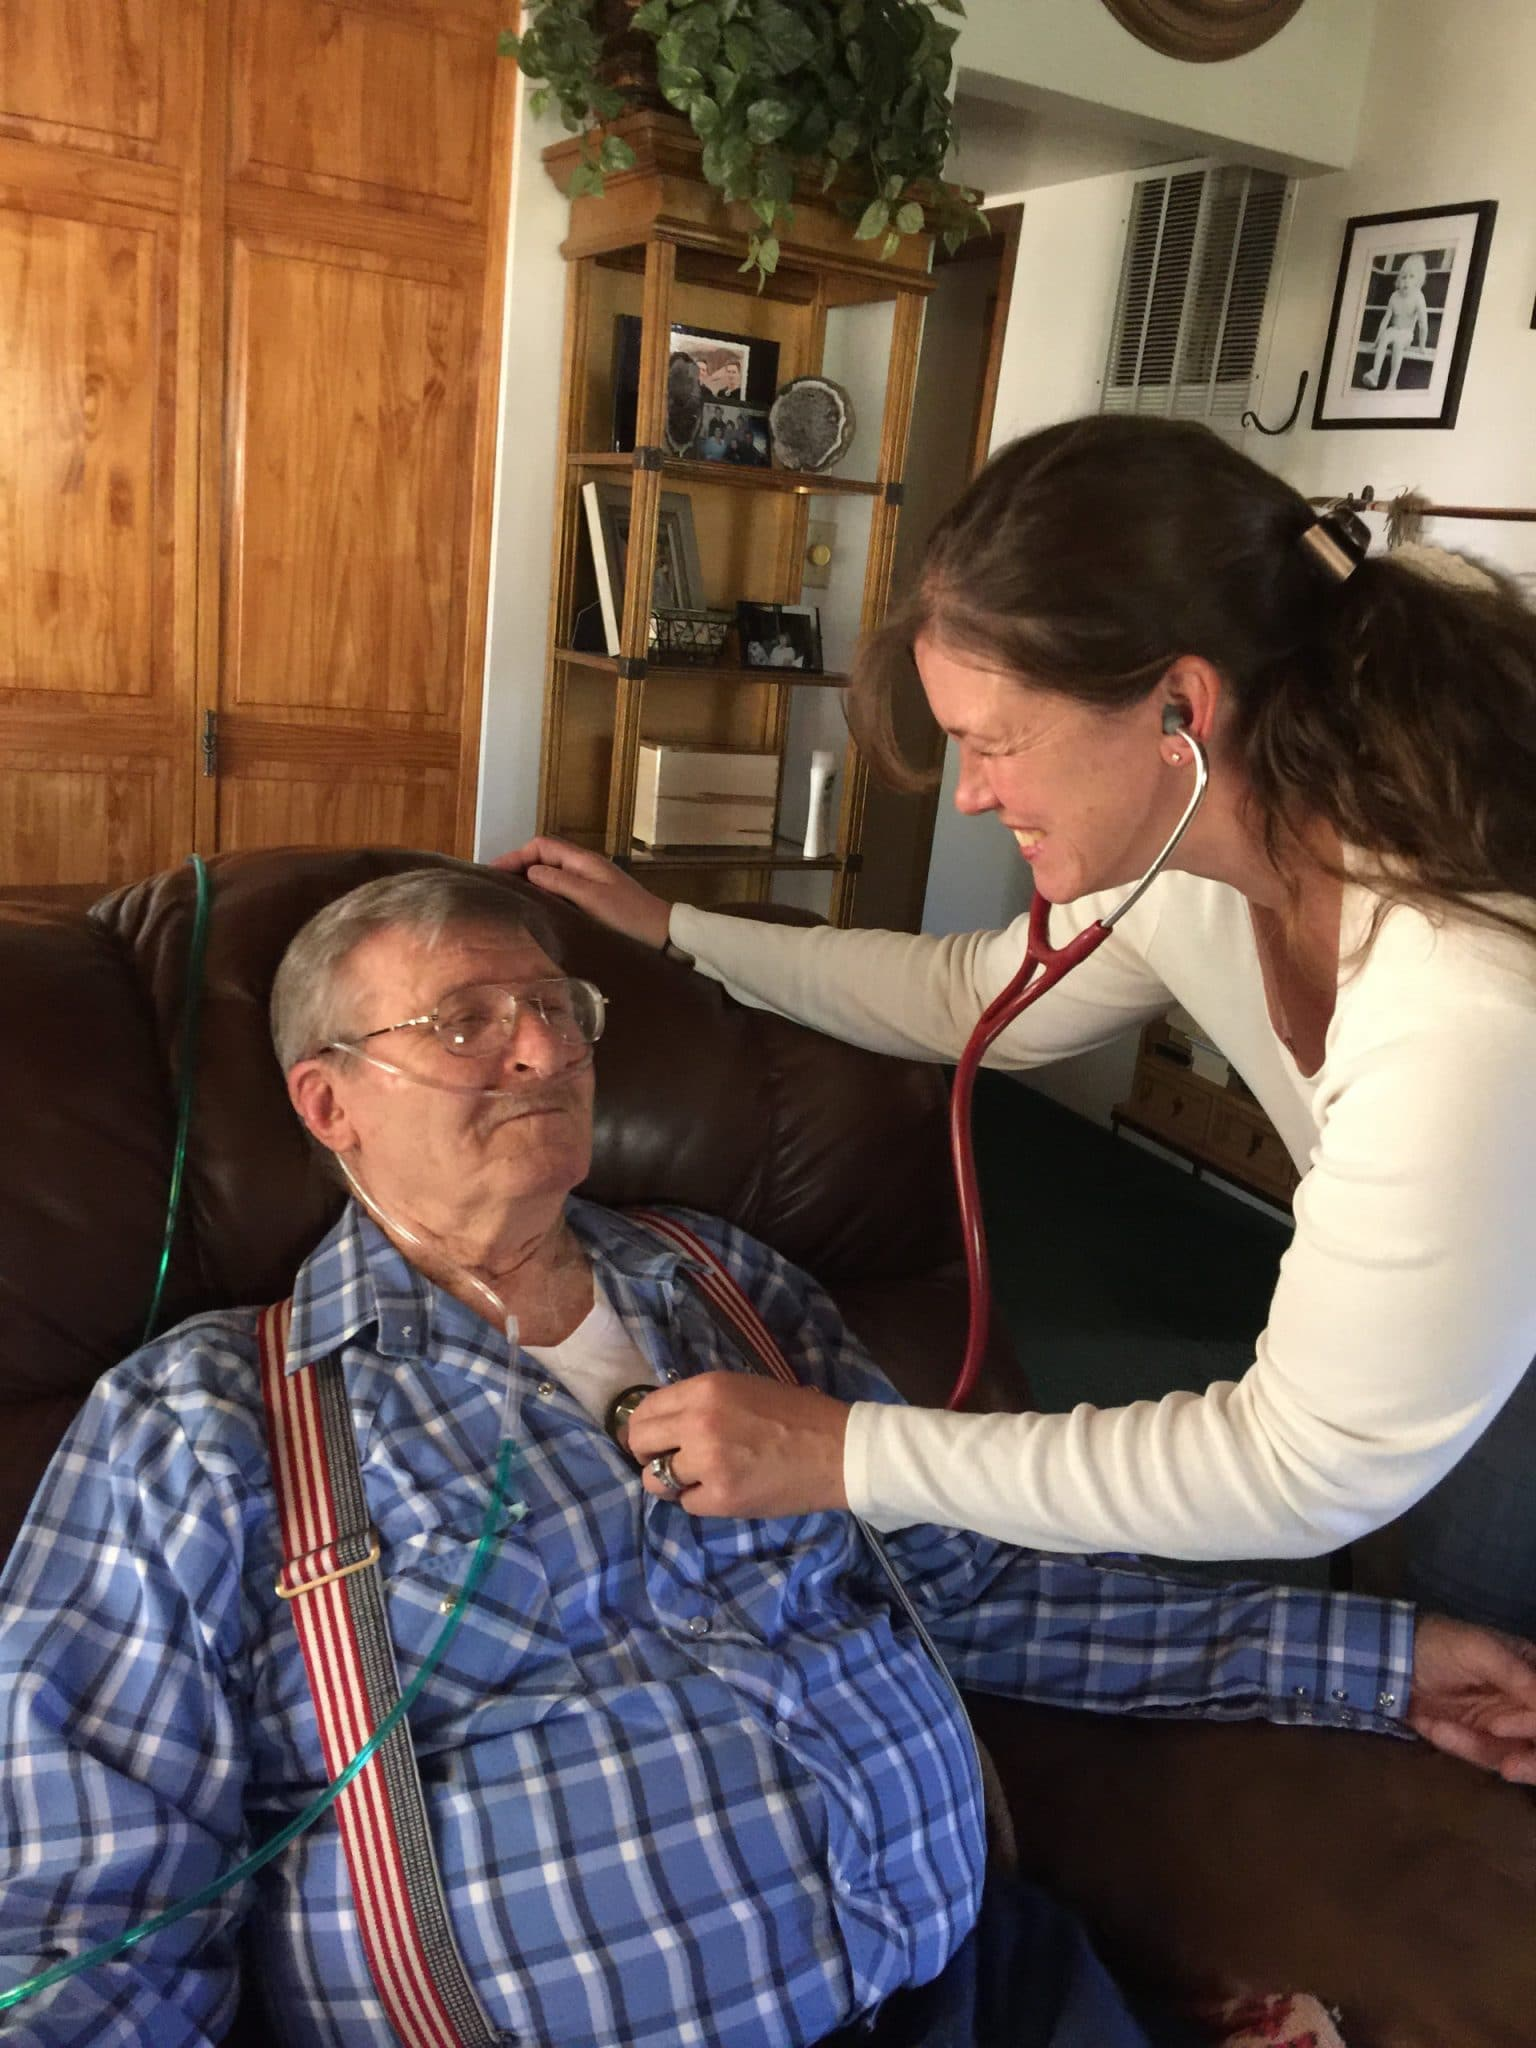 Female Mount Evans' RN with her oxygen dependent patient while she auscultates his lung sounds. Both individuals are smiling and having a good moment.